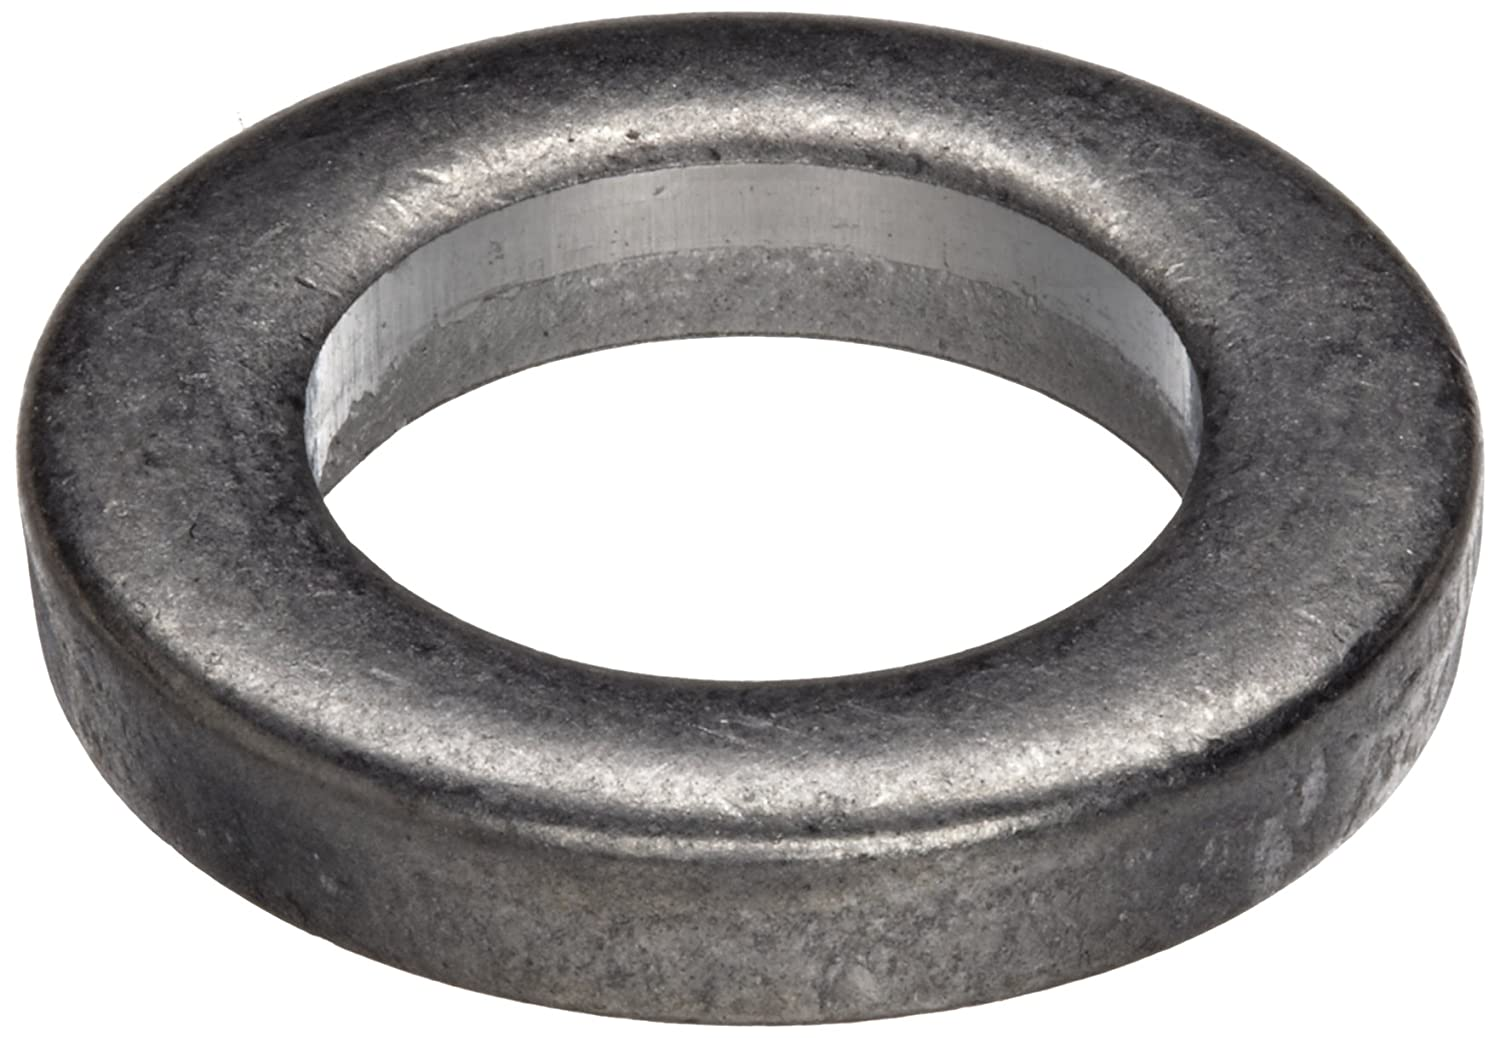 18-8 Stainless Steel Round Shim, Unpolished (Mill) Finish, Annealed, Hard Temper, ASTM A666, 1.5mm Thickness, 50mm ID, 62mm OD (Pack of 5) Small Parts Inc 188SS2053